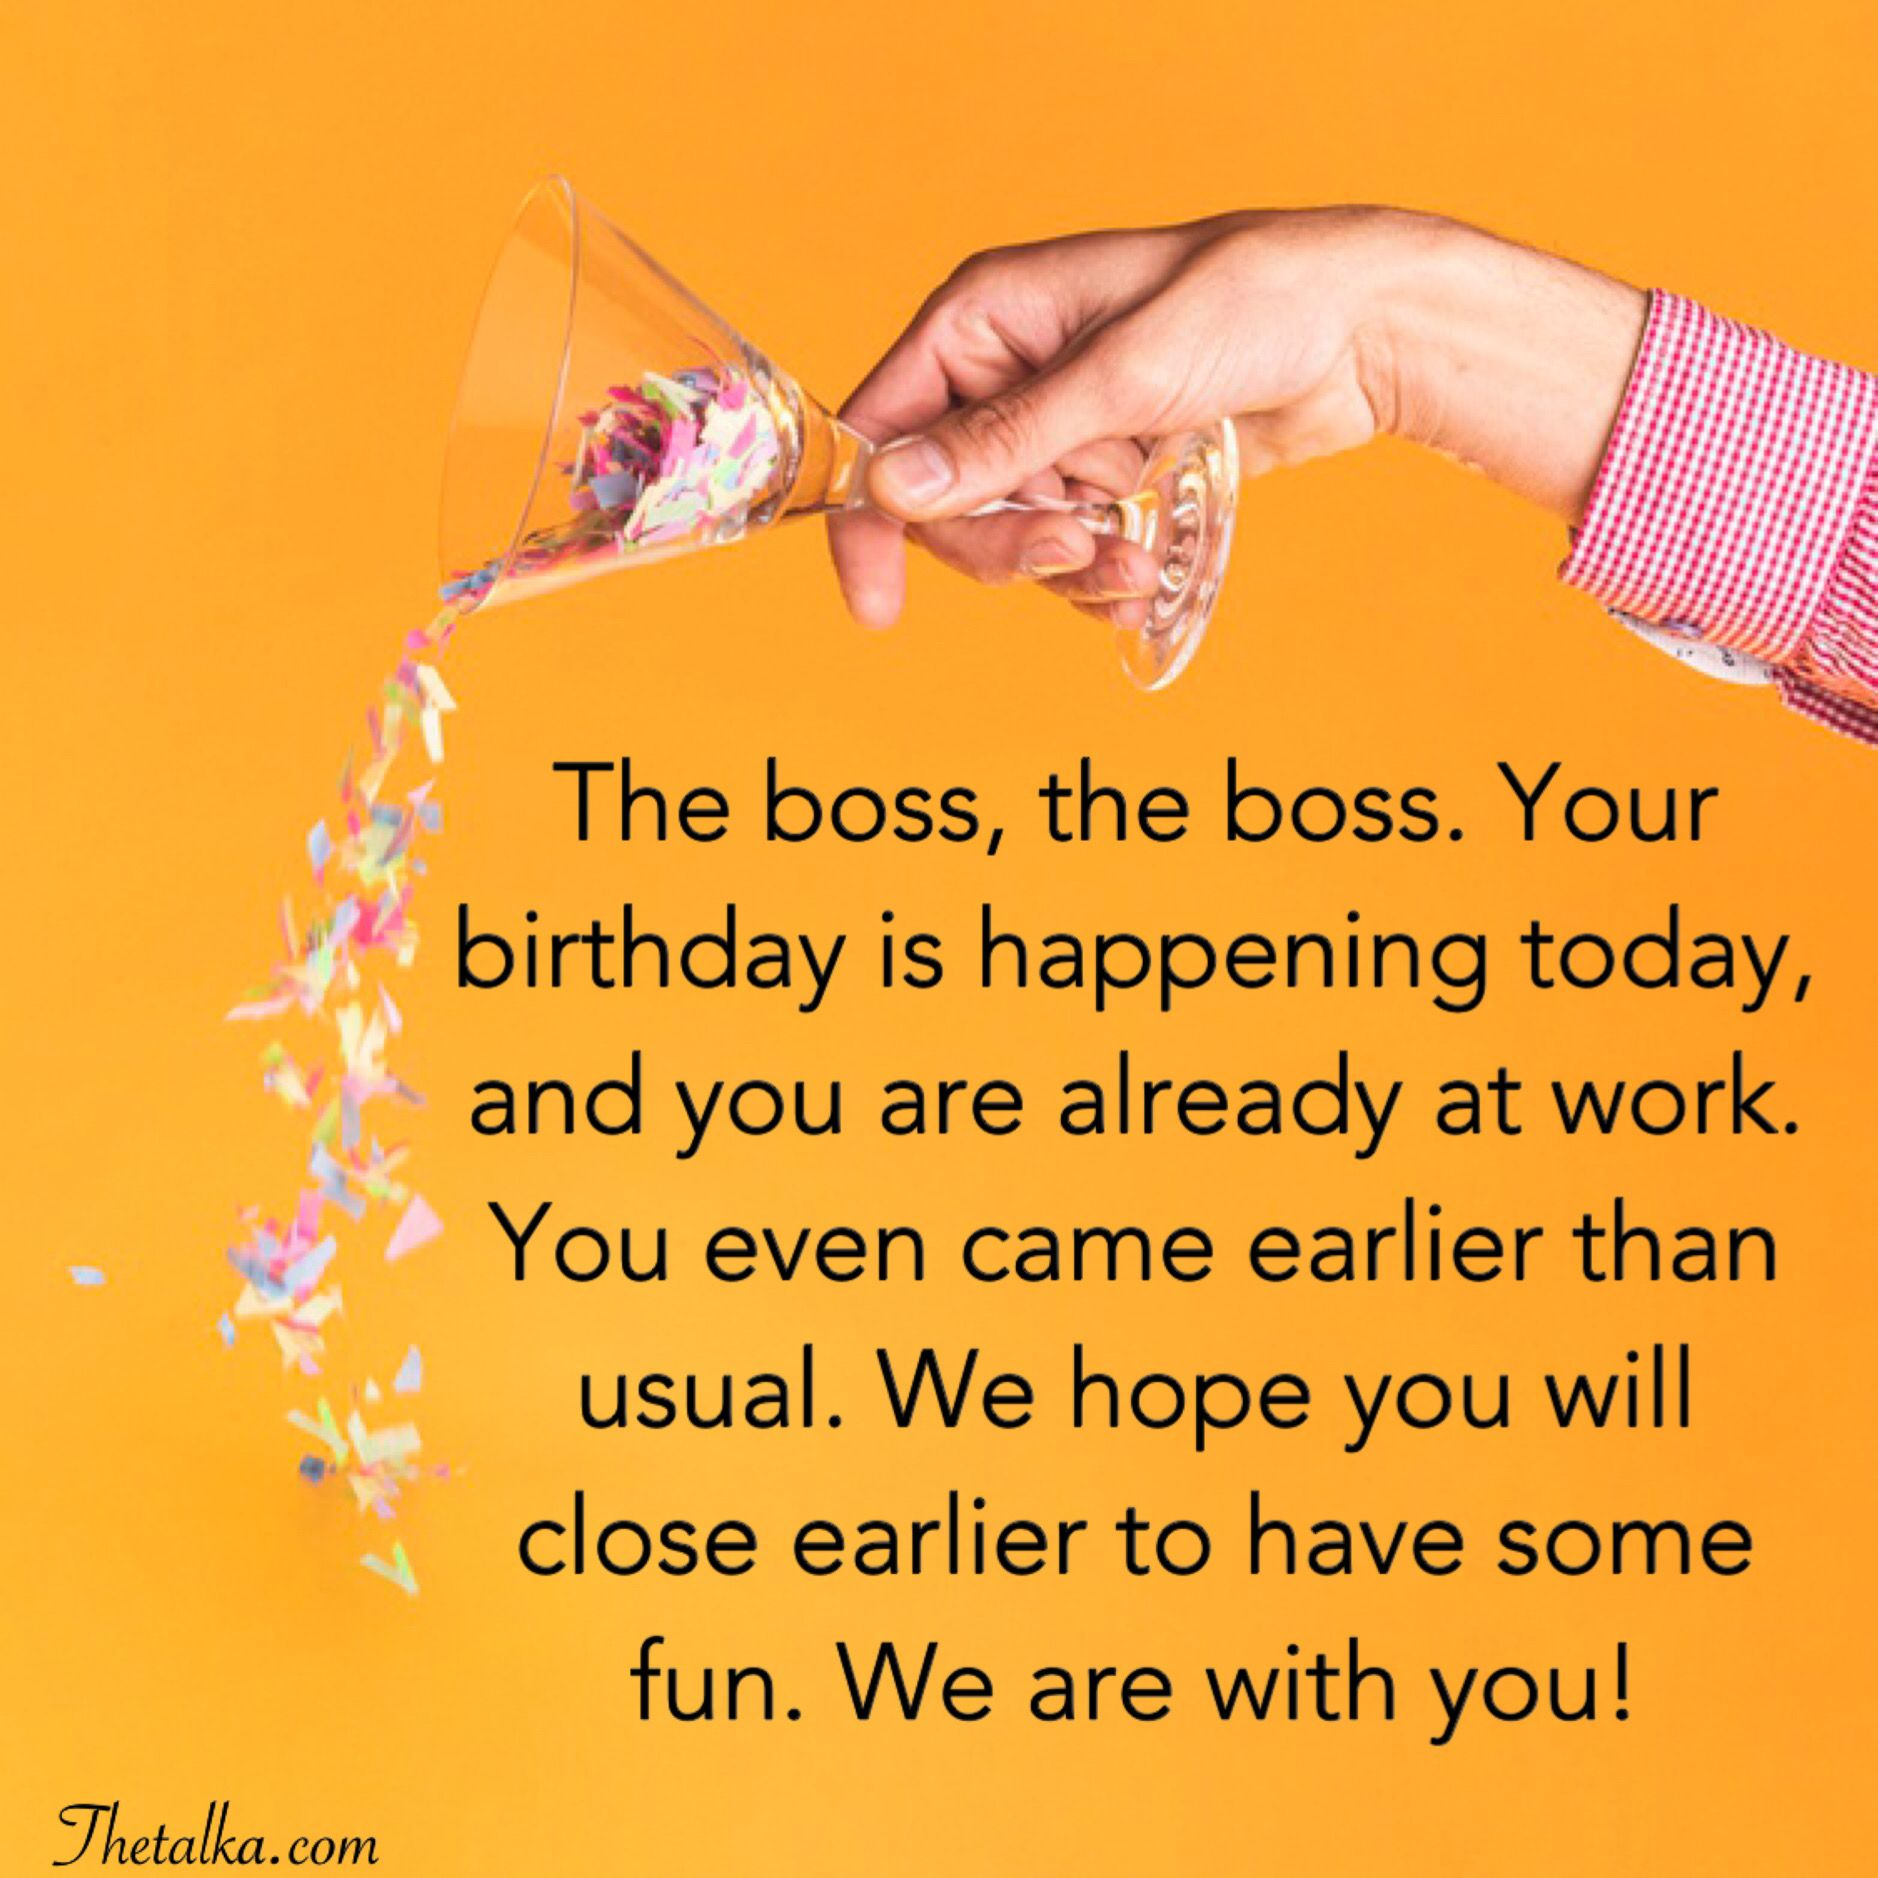 Heartfelt Birthday Wishes For Boss Birthday wishes for